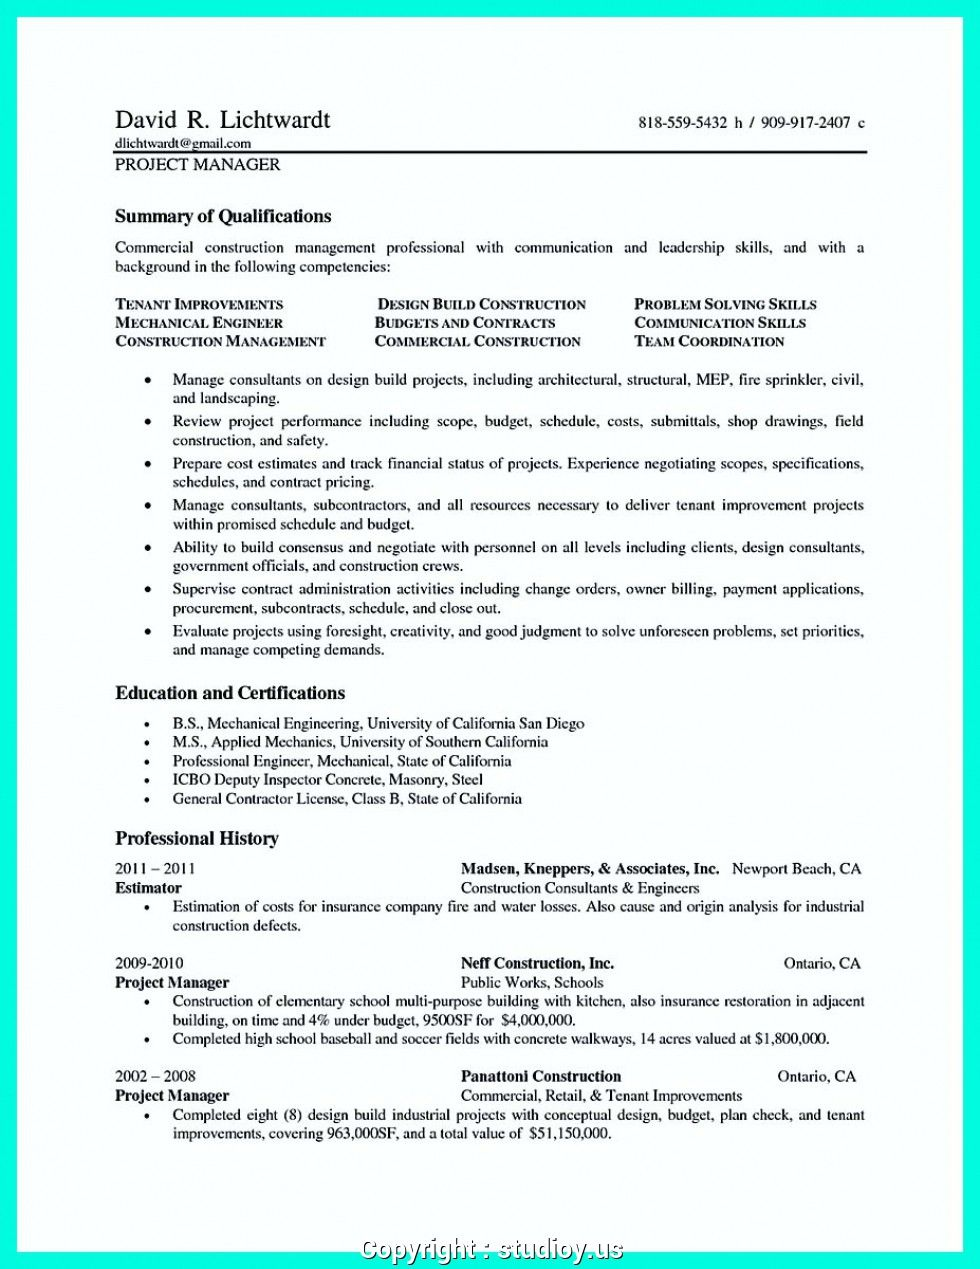 Resume Examples Qld Project manager resume, Resume